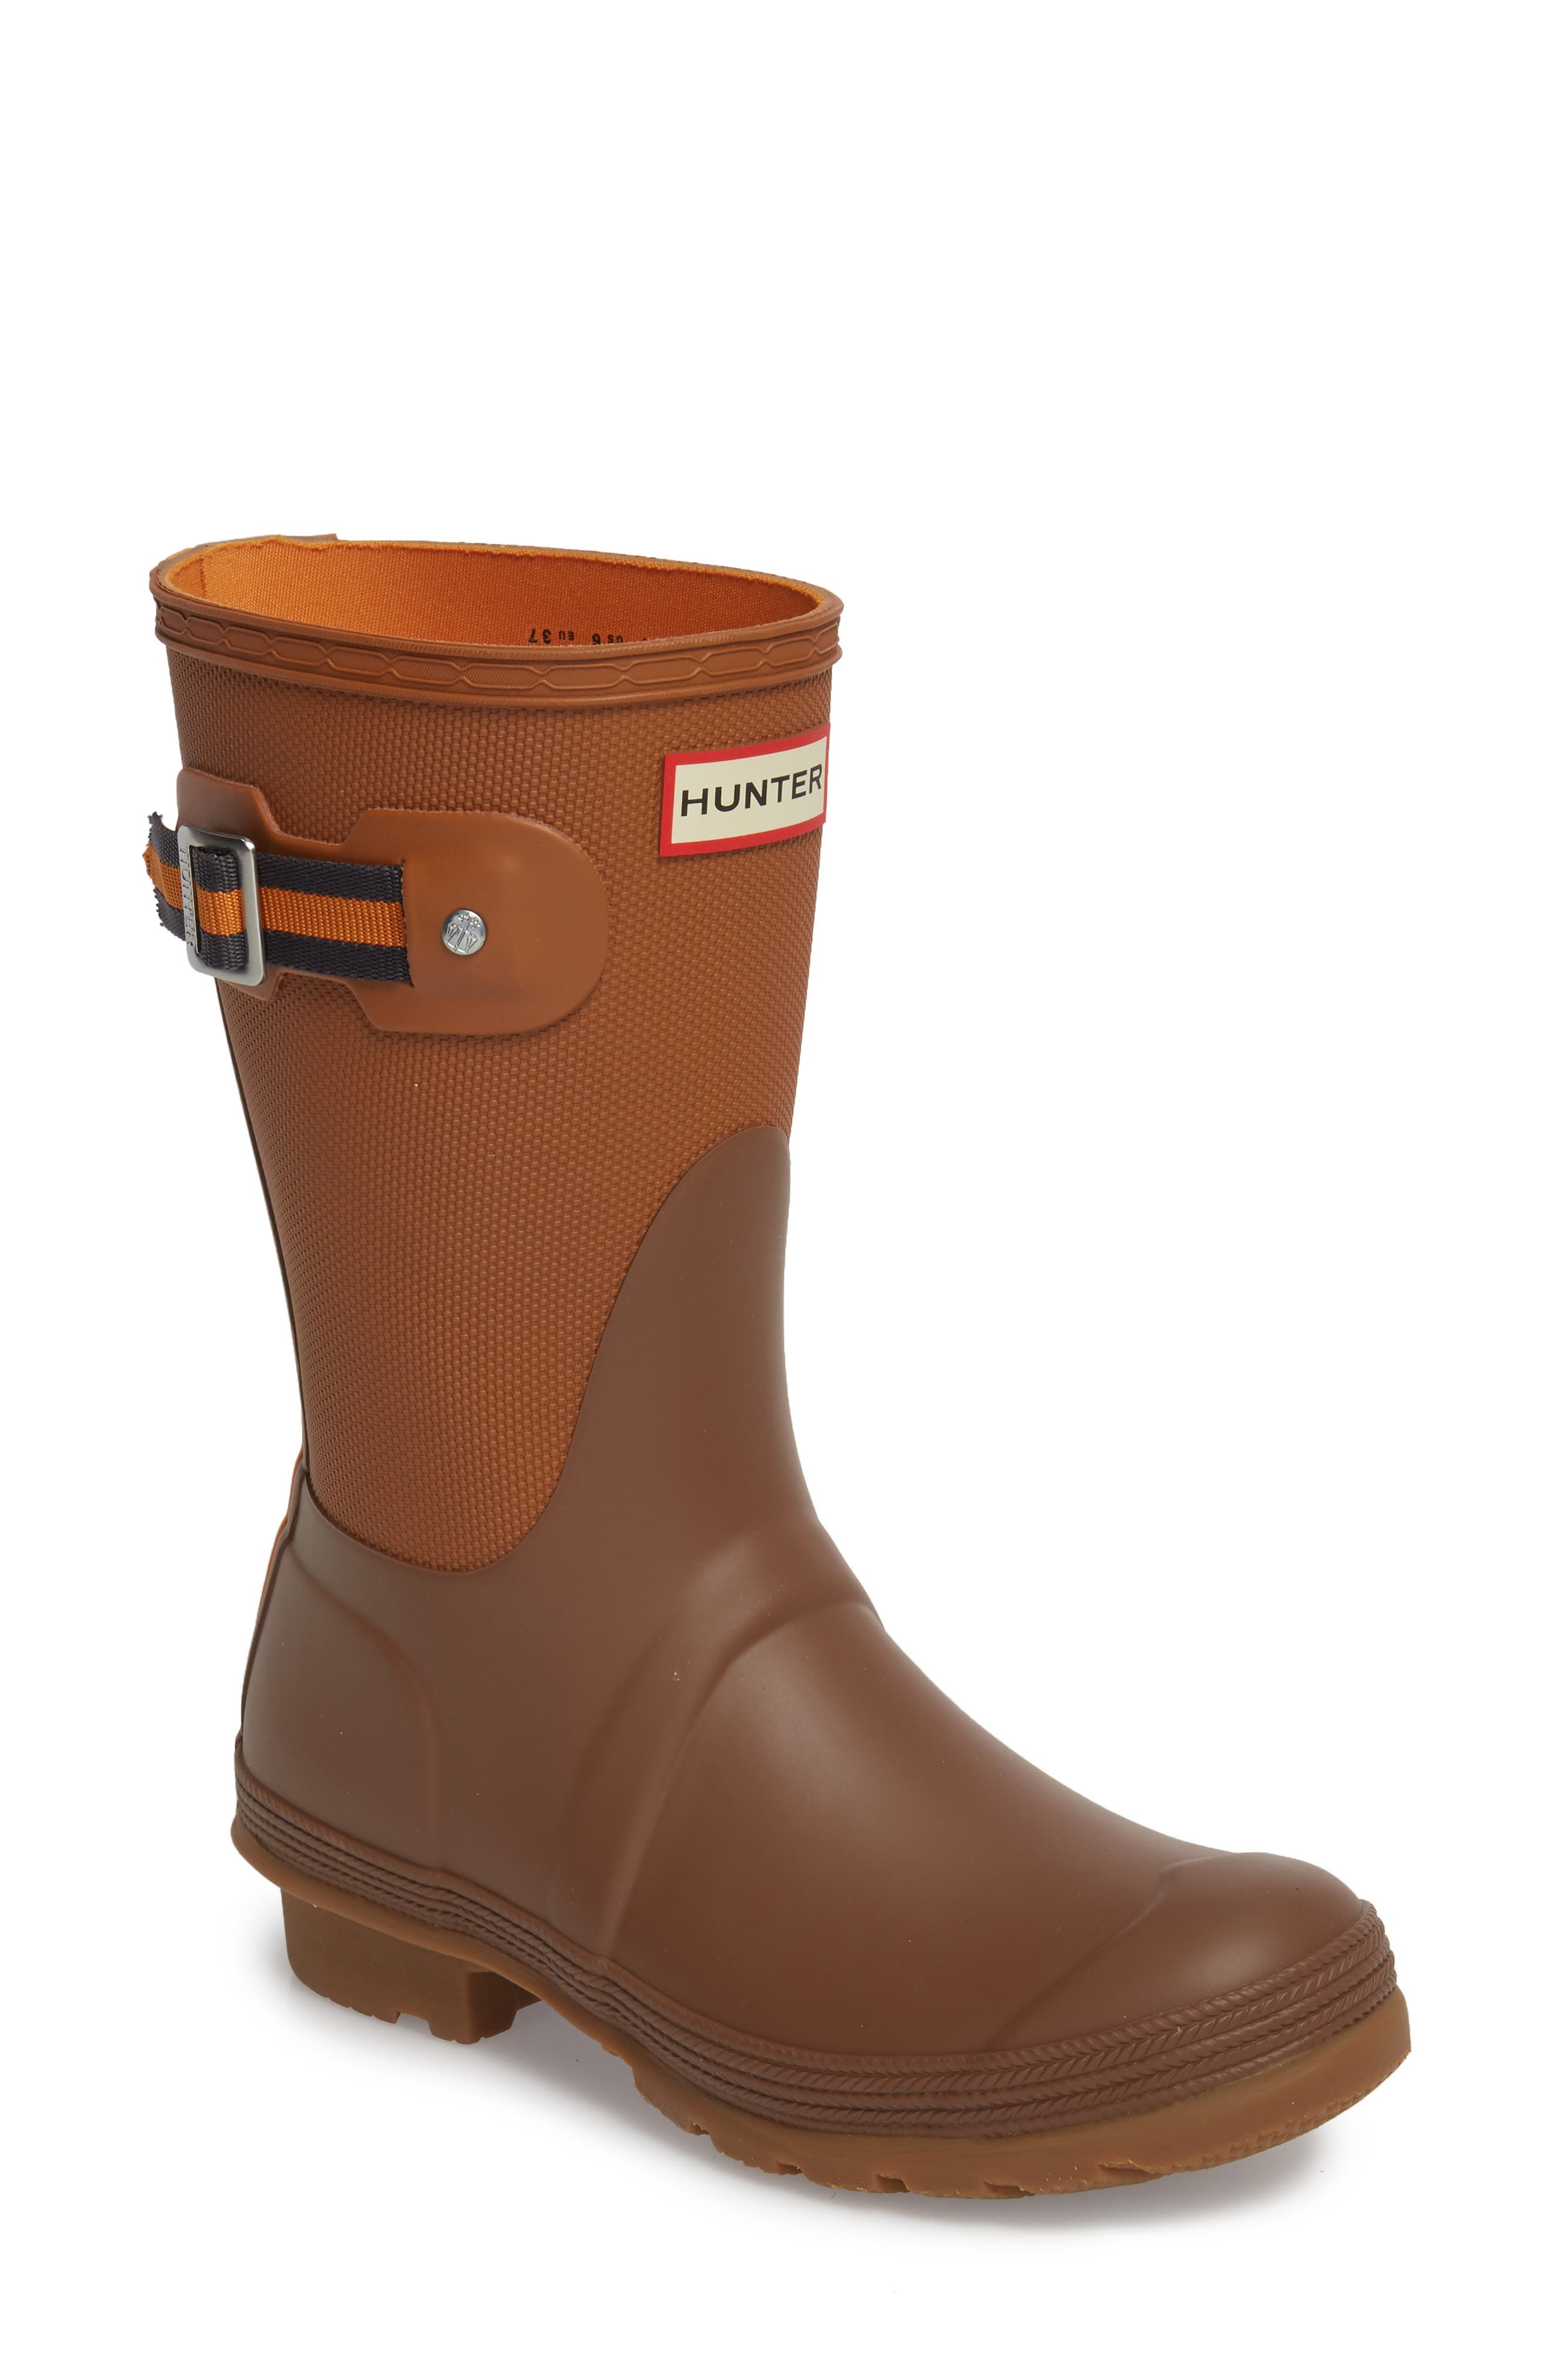 Main Image - Hunter Original Sissinghurst Short Rain Boot (Women)